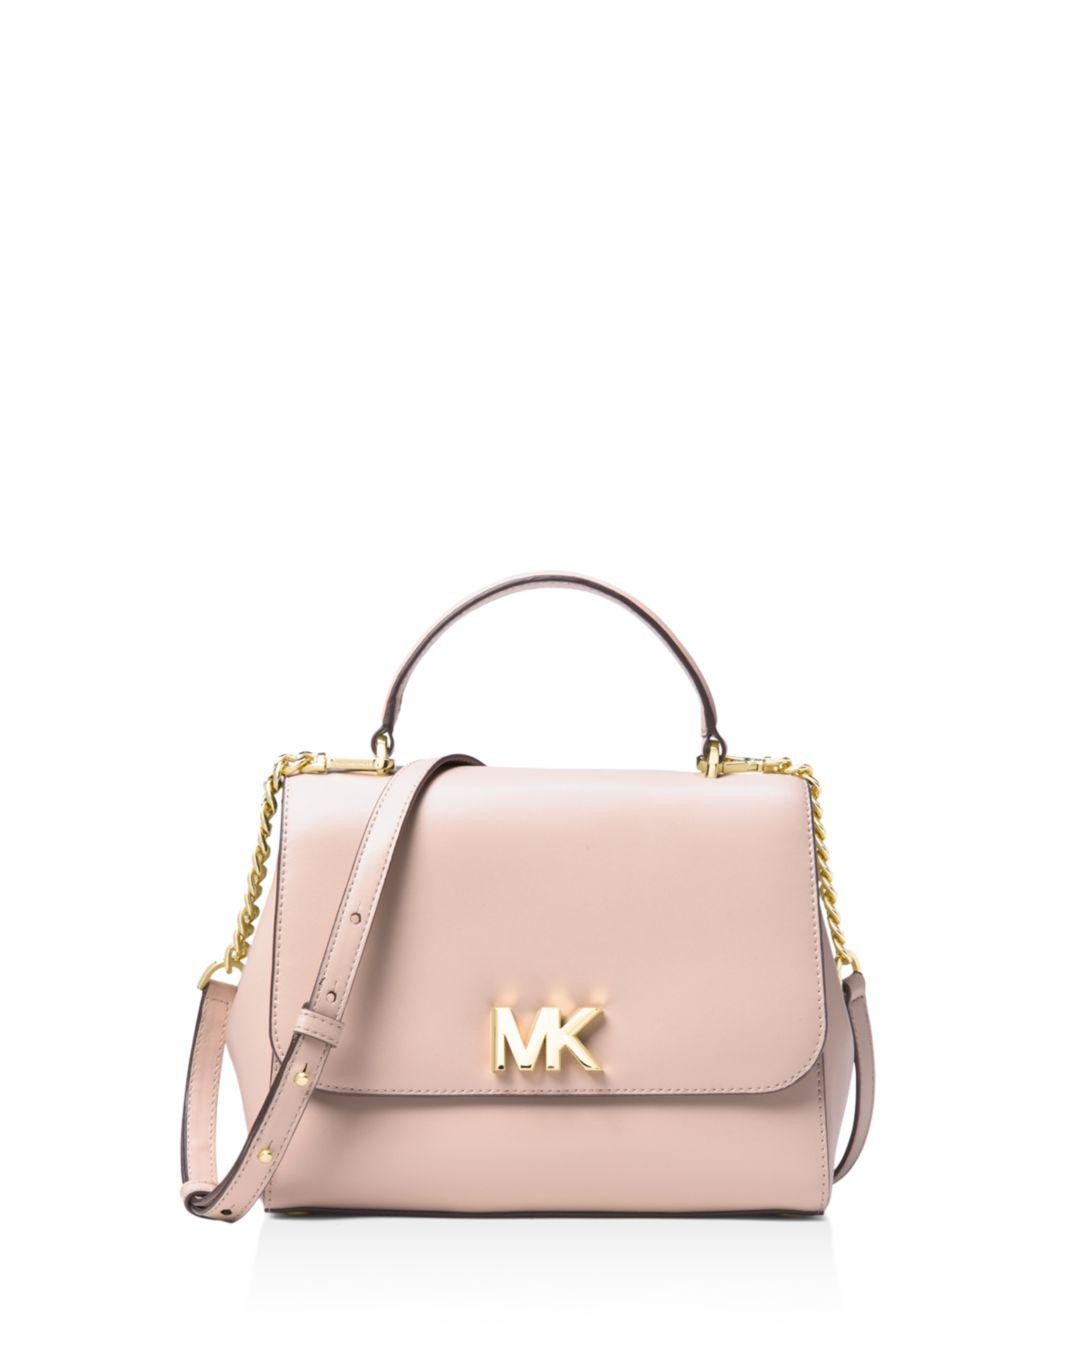 Lyst - MICHAEL Michael Kors Mott Medium Top Handle Satchel in Pink 33fd465ddc524